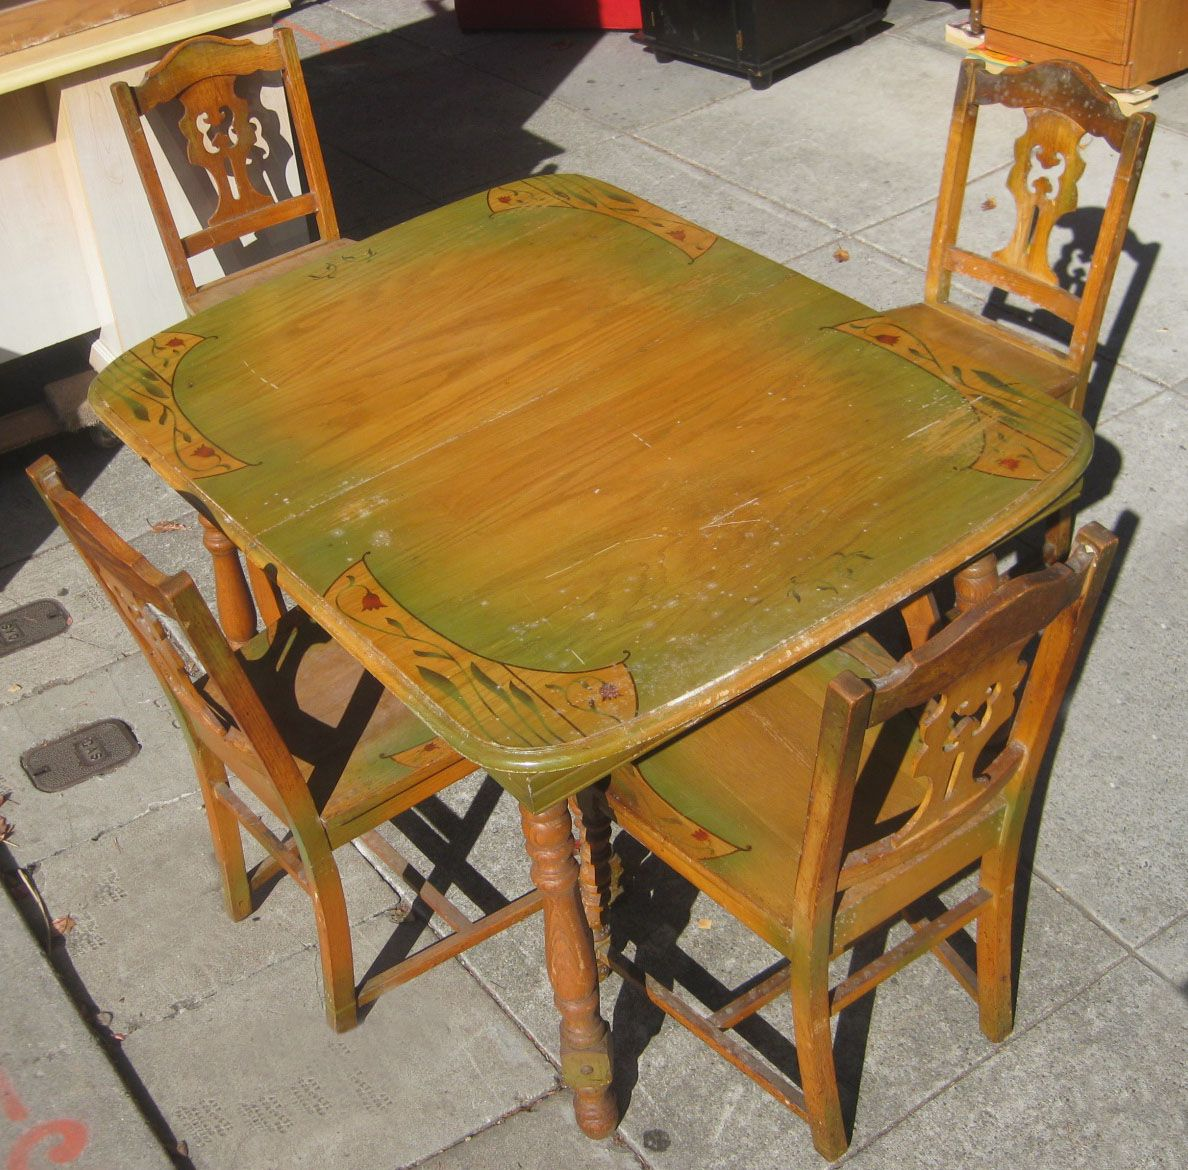 Oak Kitchen Table And Chairs Kingston Brass Faucet In 1940s Collectibles Sold